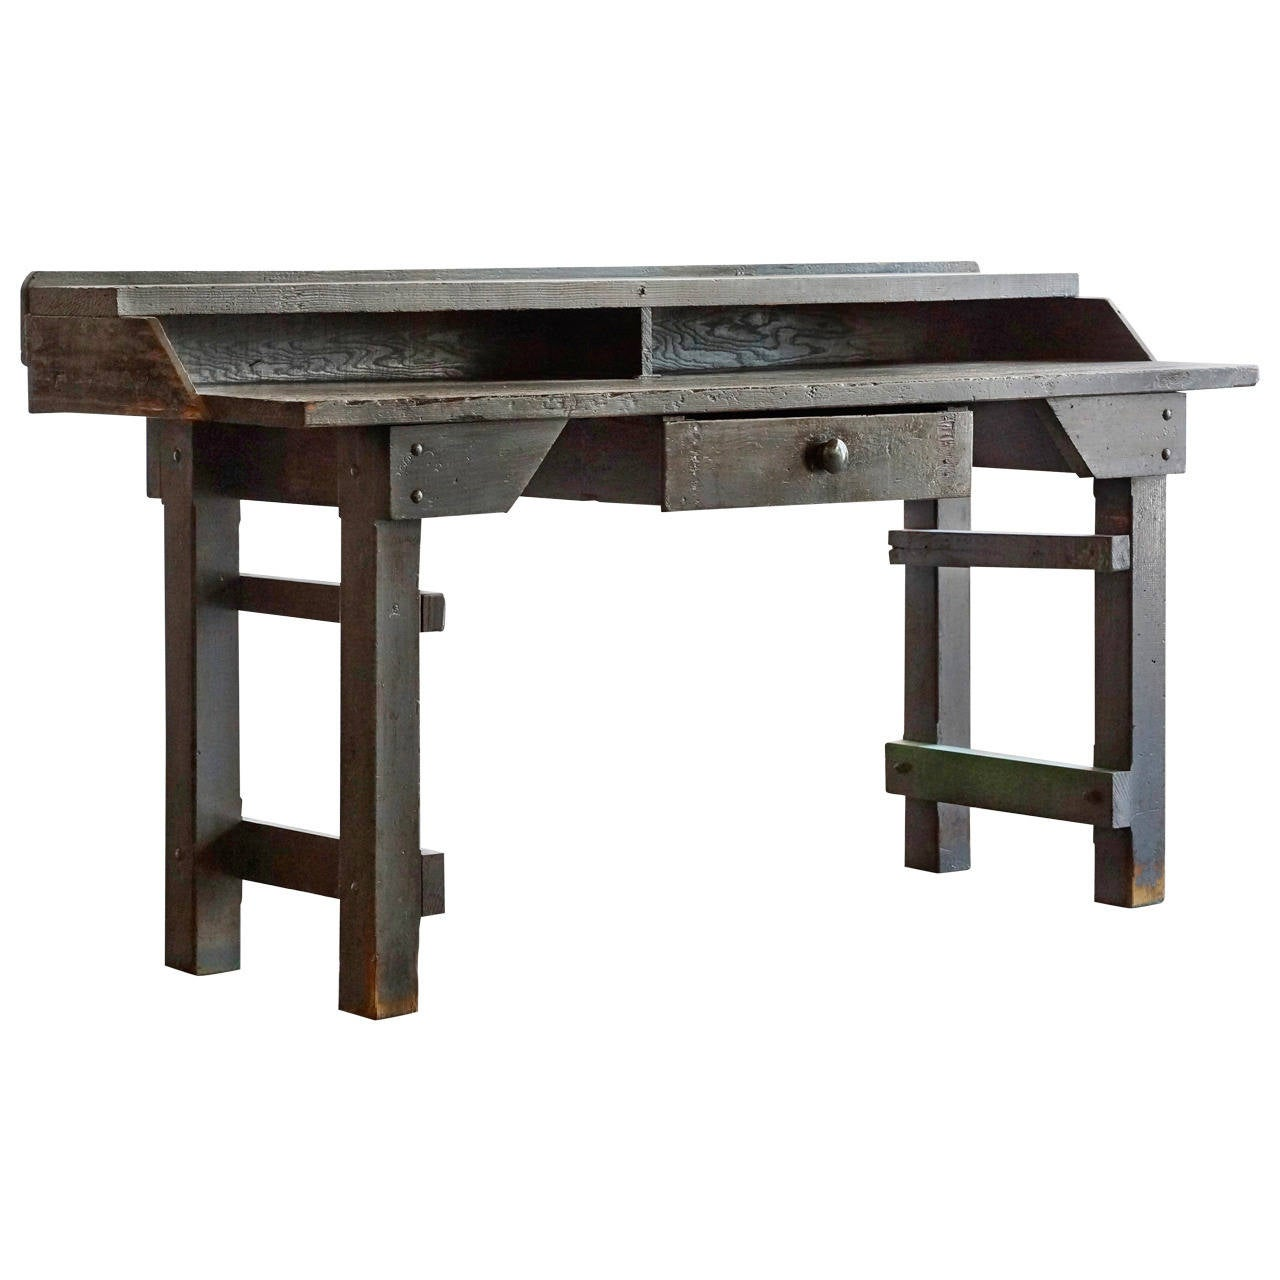 Project Me Craftsman Wood Workbench